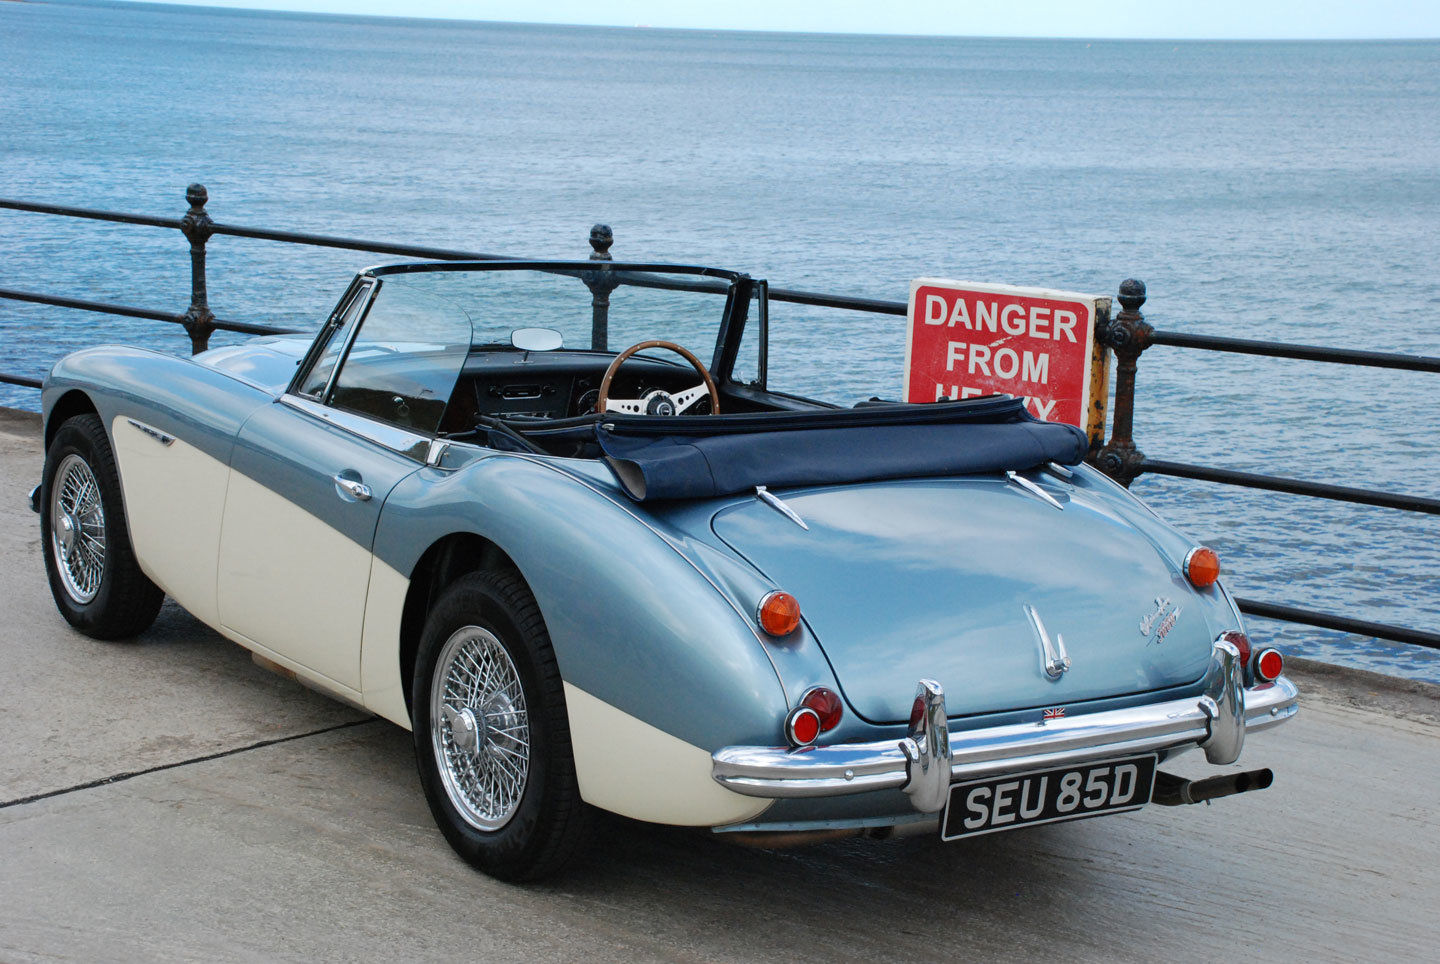 1966 Austin Healey 3000 MK 3 BJ8 phase 2 For Sale (picture 6 of 10)